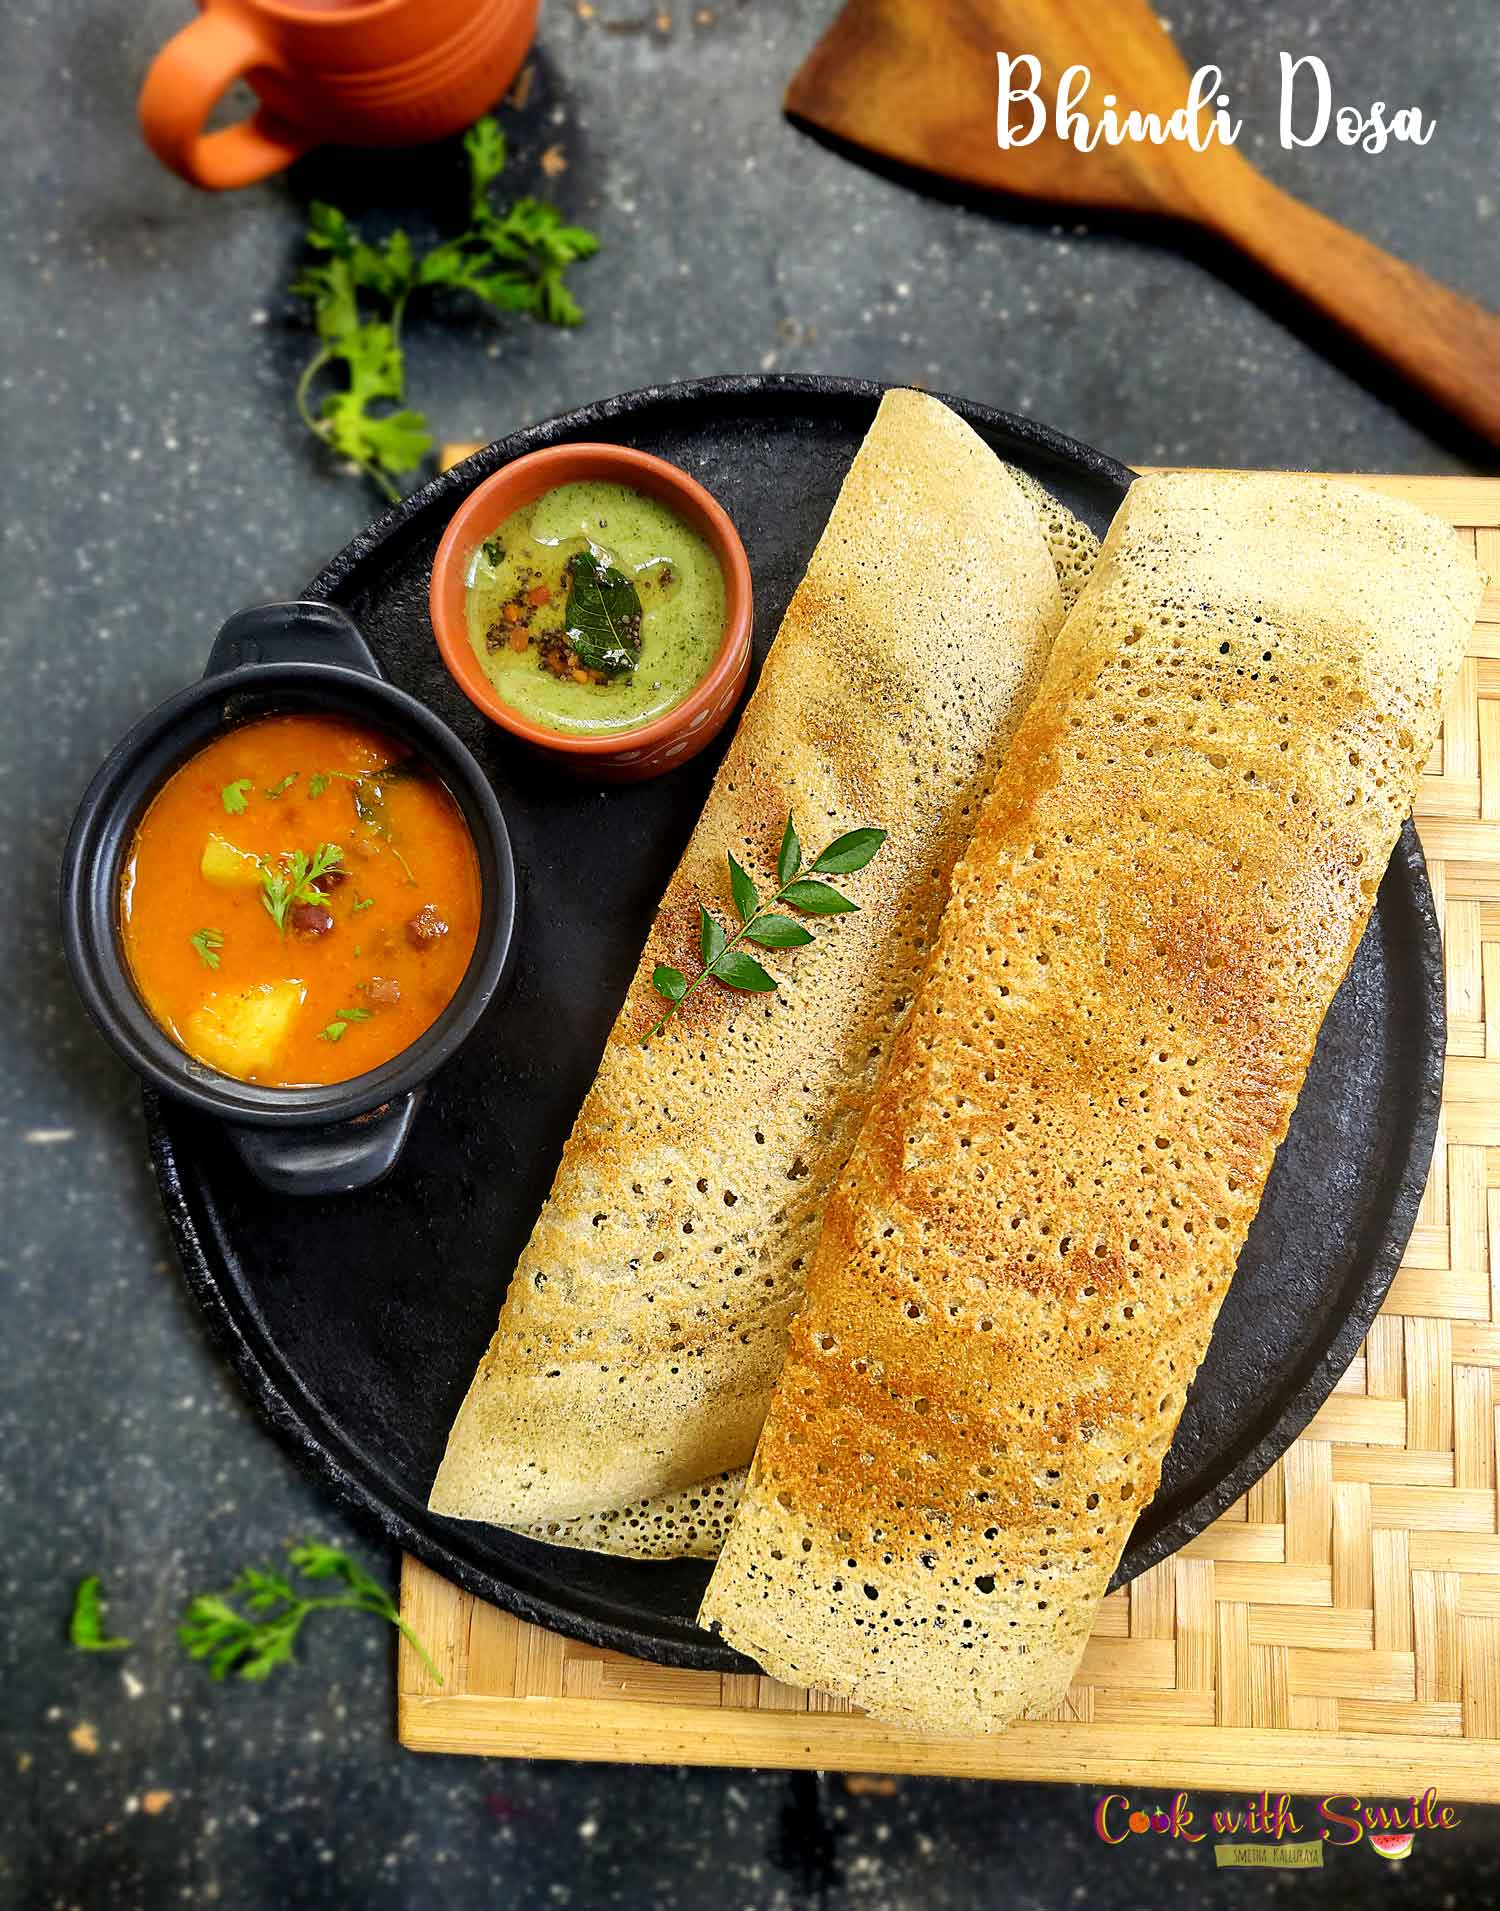 Lady's Finger dosa